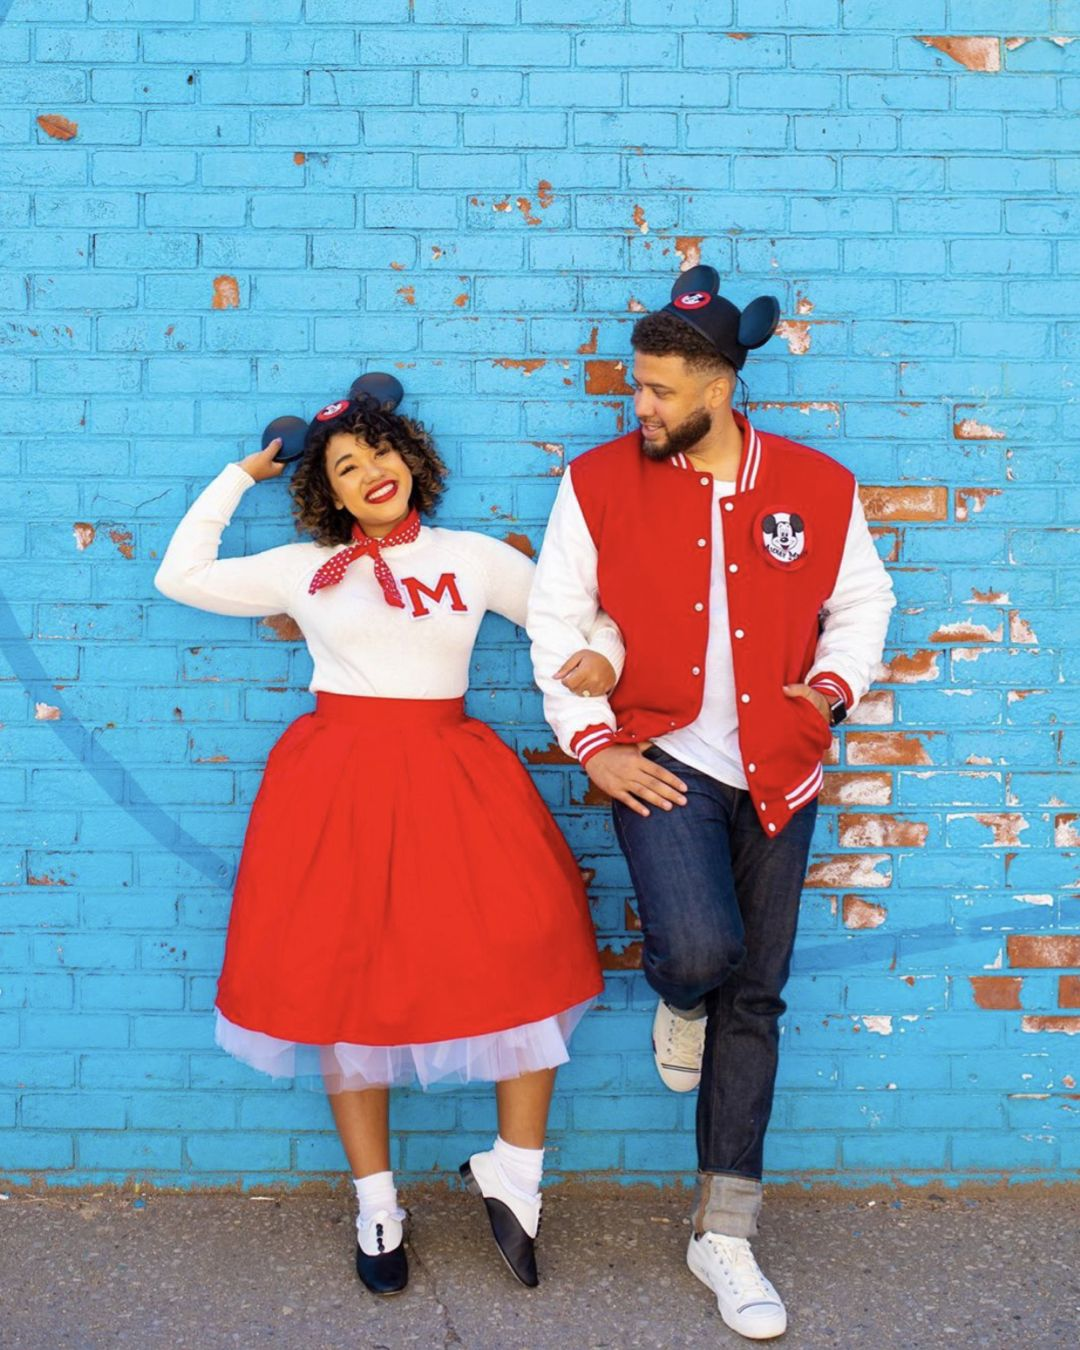 We're also ready to dress up and have some fun! 75 Best Couples Halloween Costumes 2021 Cute Funny Couples Halloween Costume Ideas